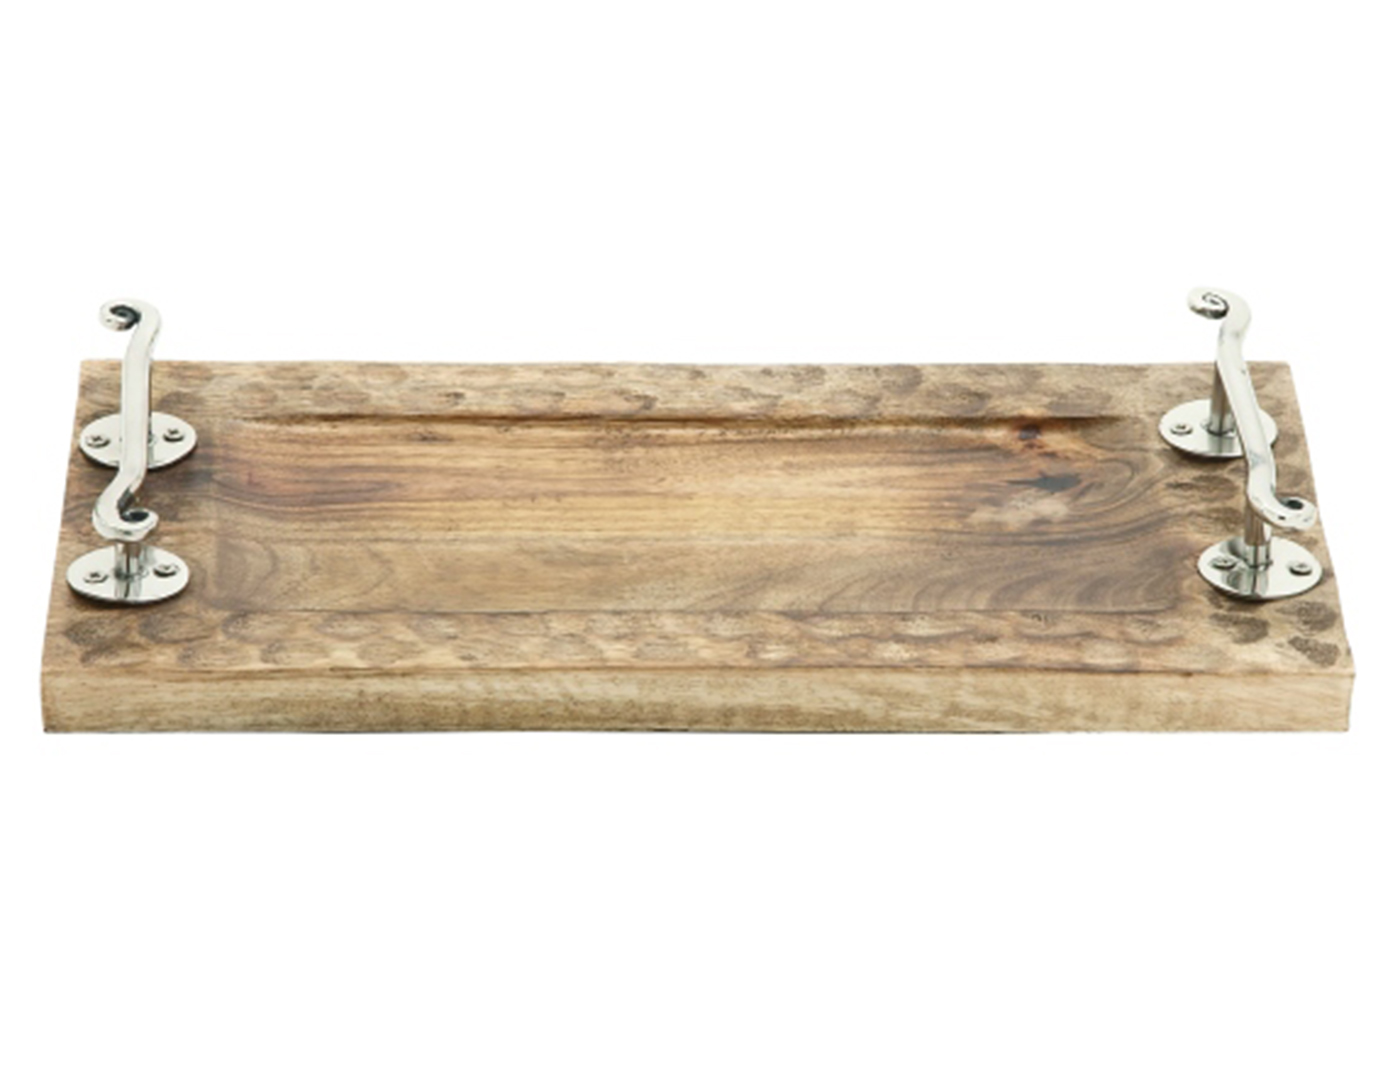 Distressed Wood and Aluminum Table Tray